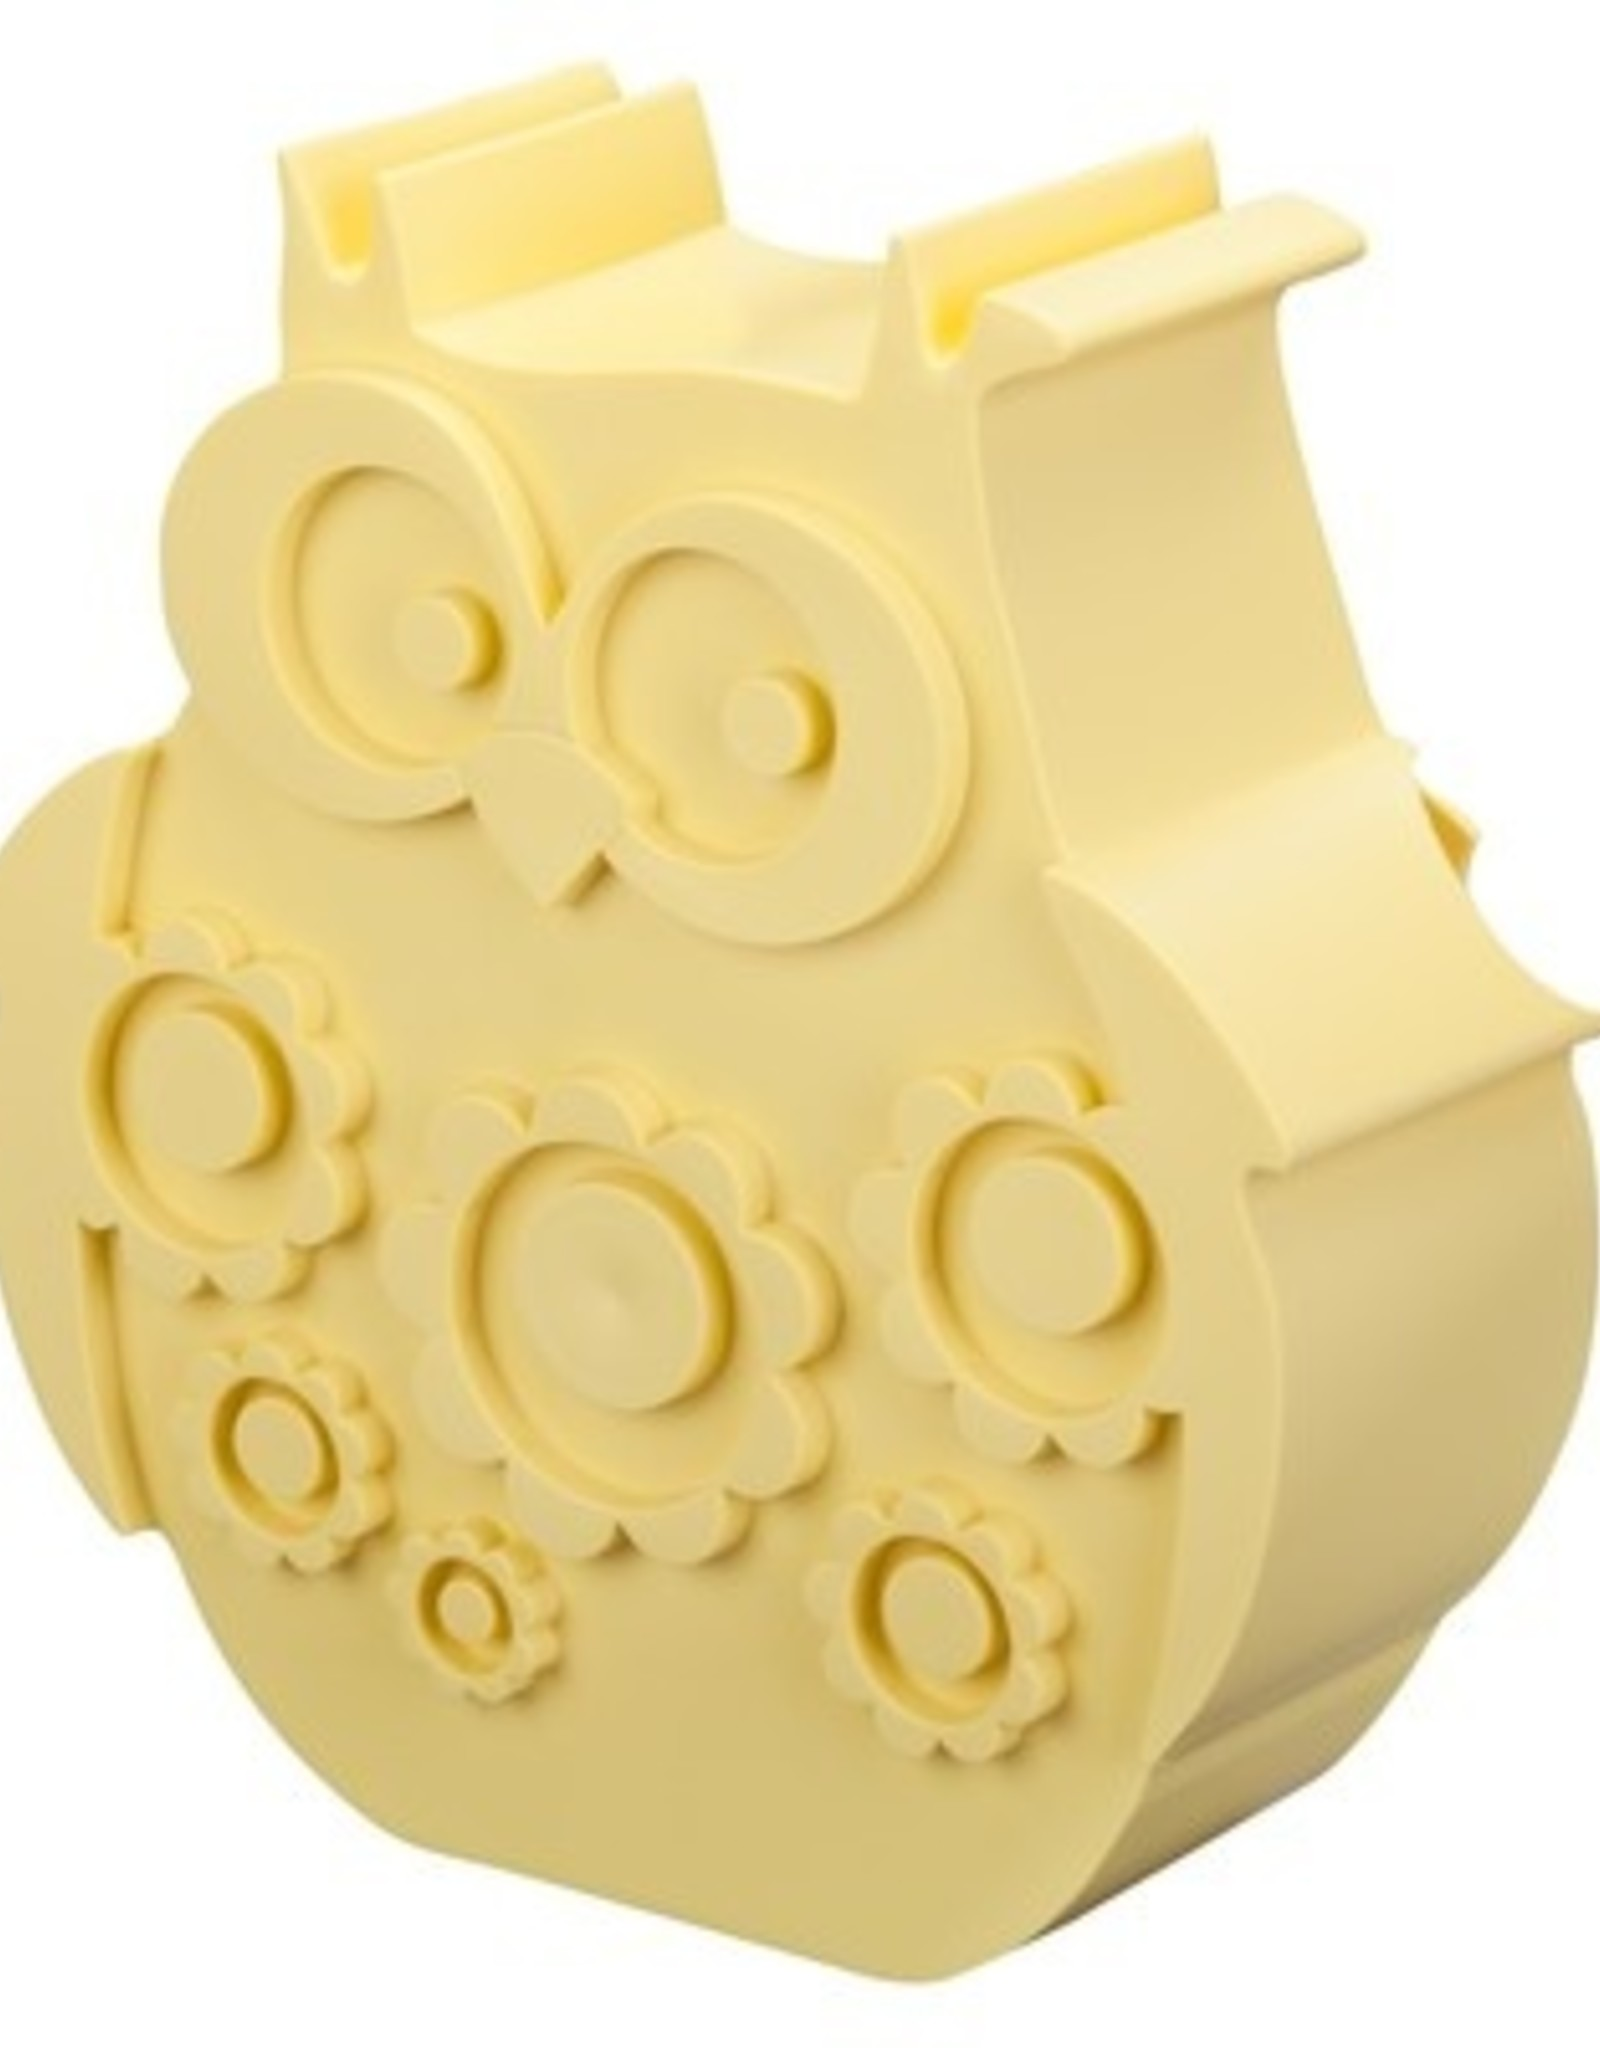 BLAFRE Blafre - Lunch box owl - Light yellow